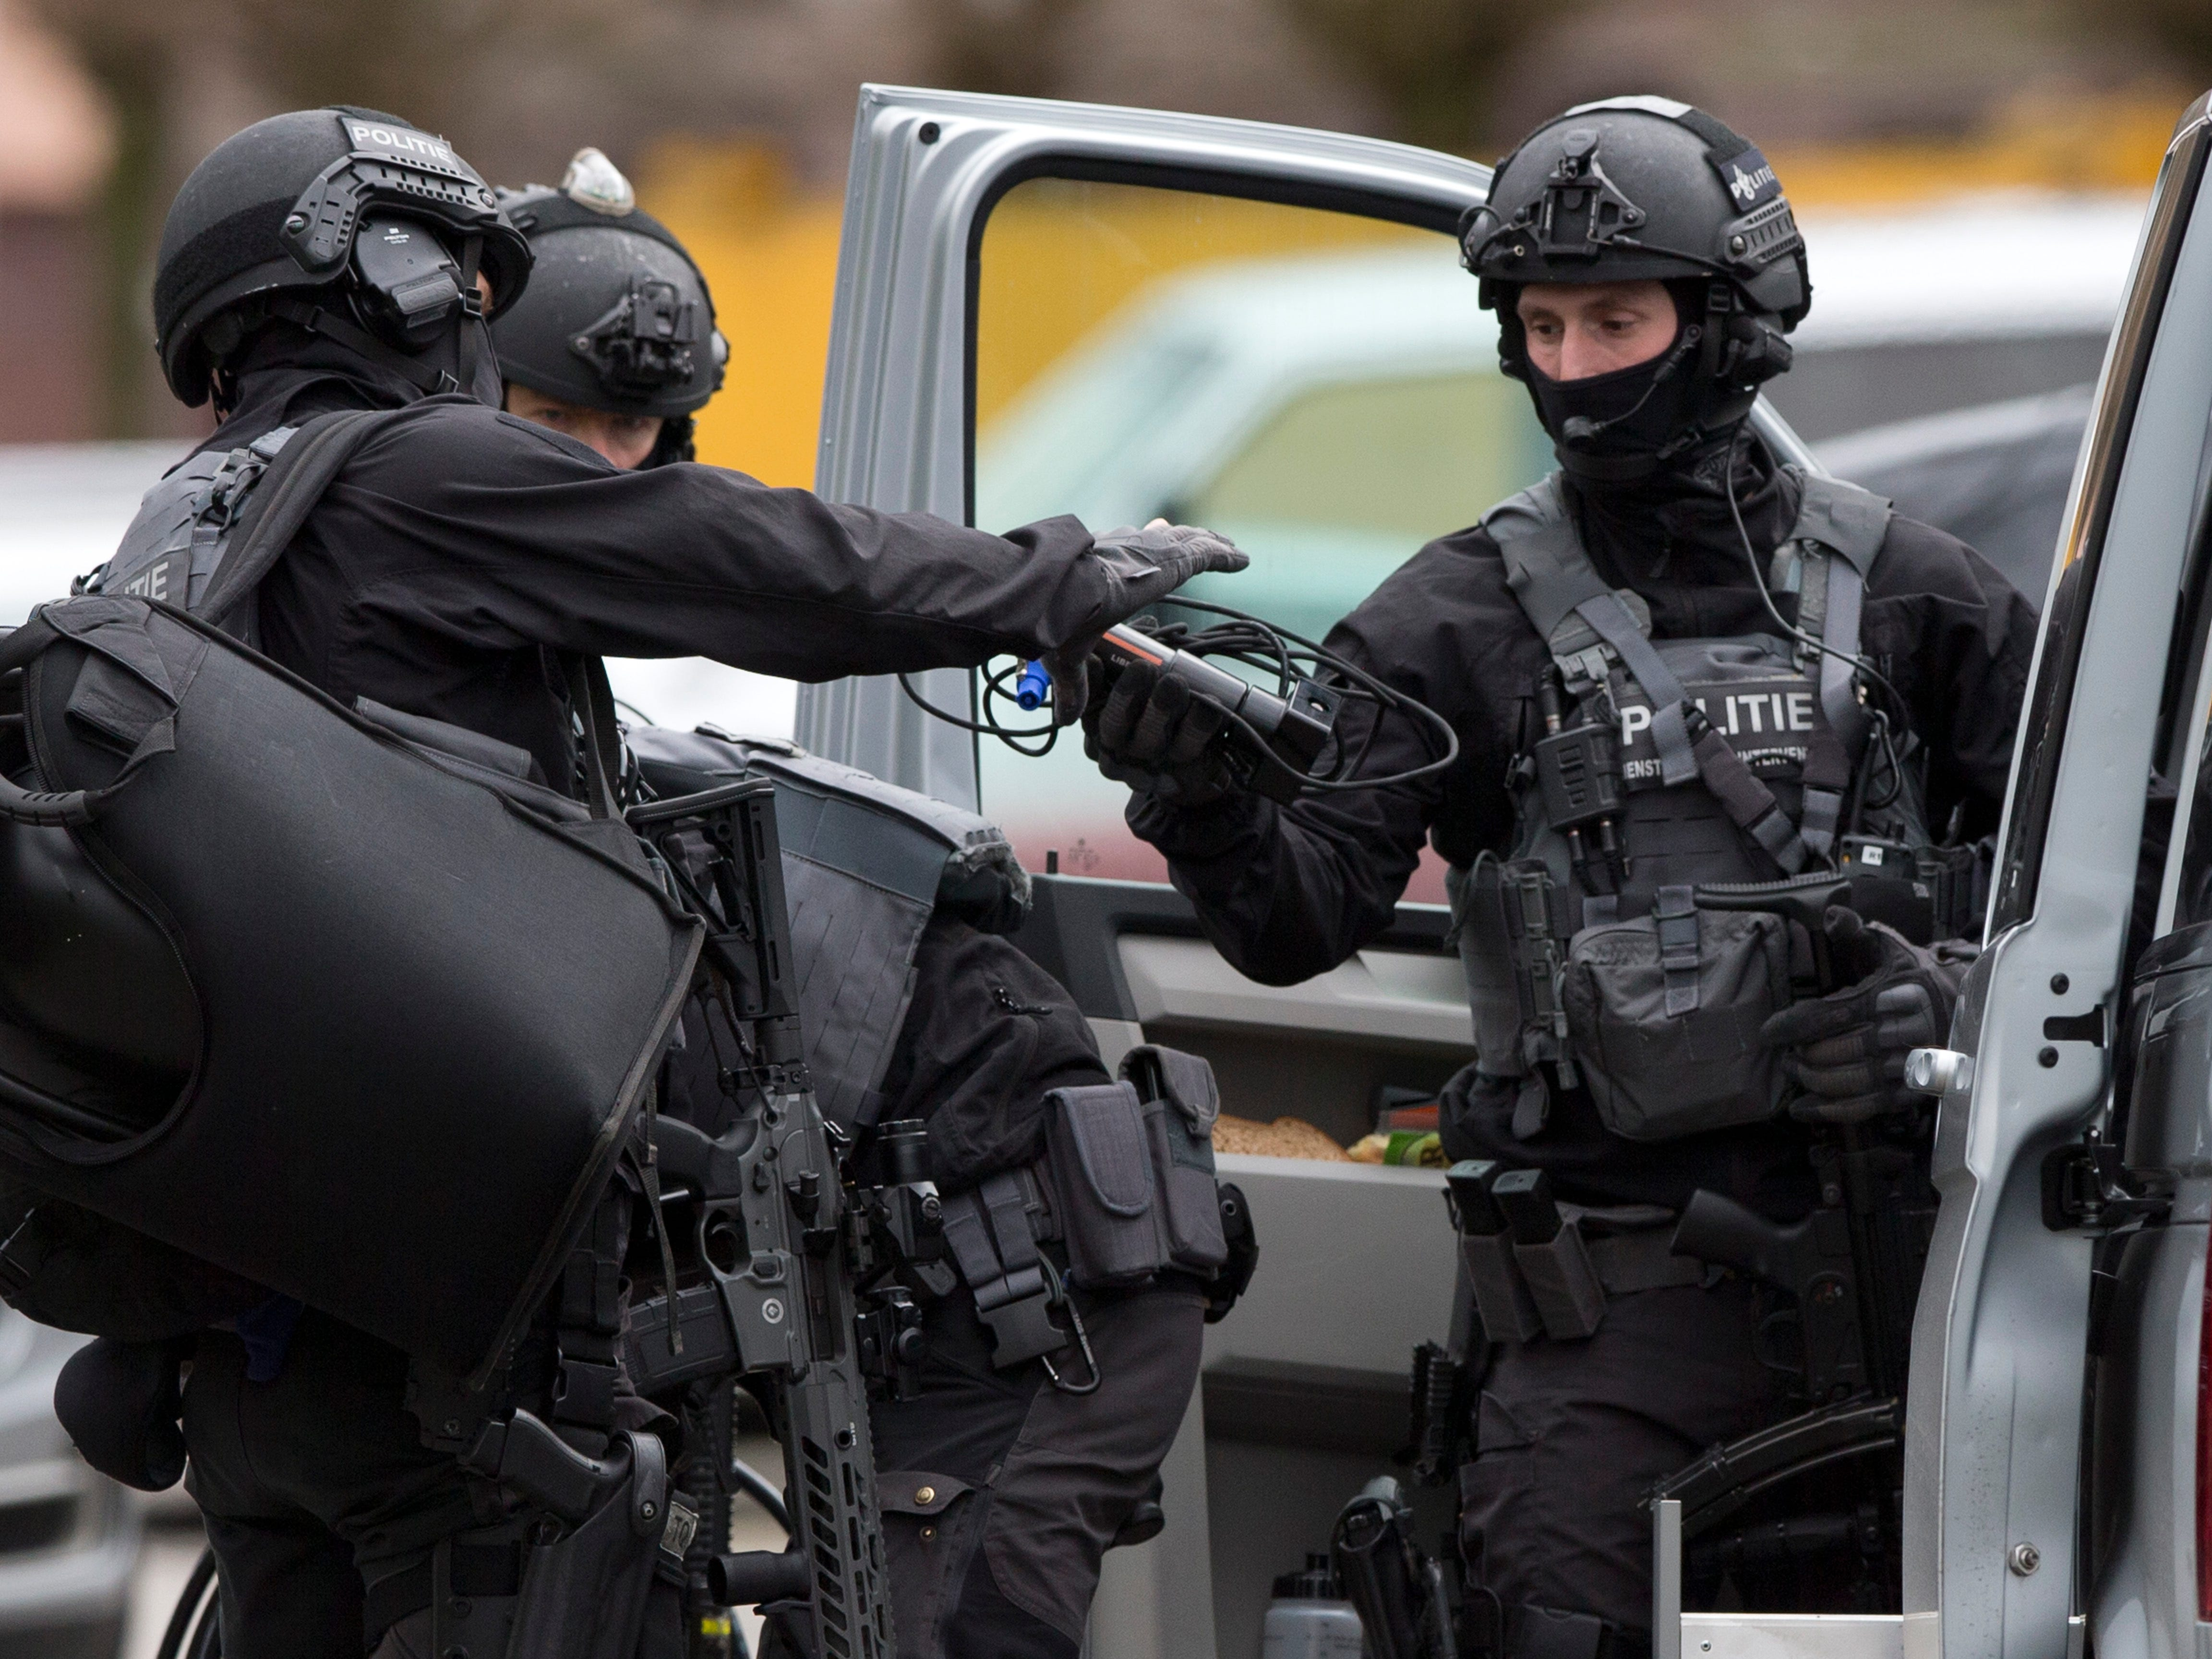 Dutch counter terrorism police prepare to enter a house after a shooting incident in Utrecht, Netherlands, March 18, 2019.